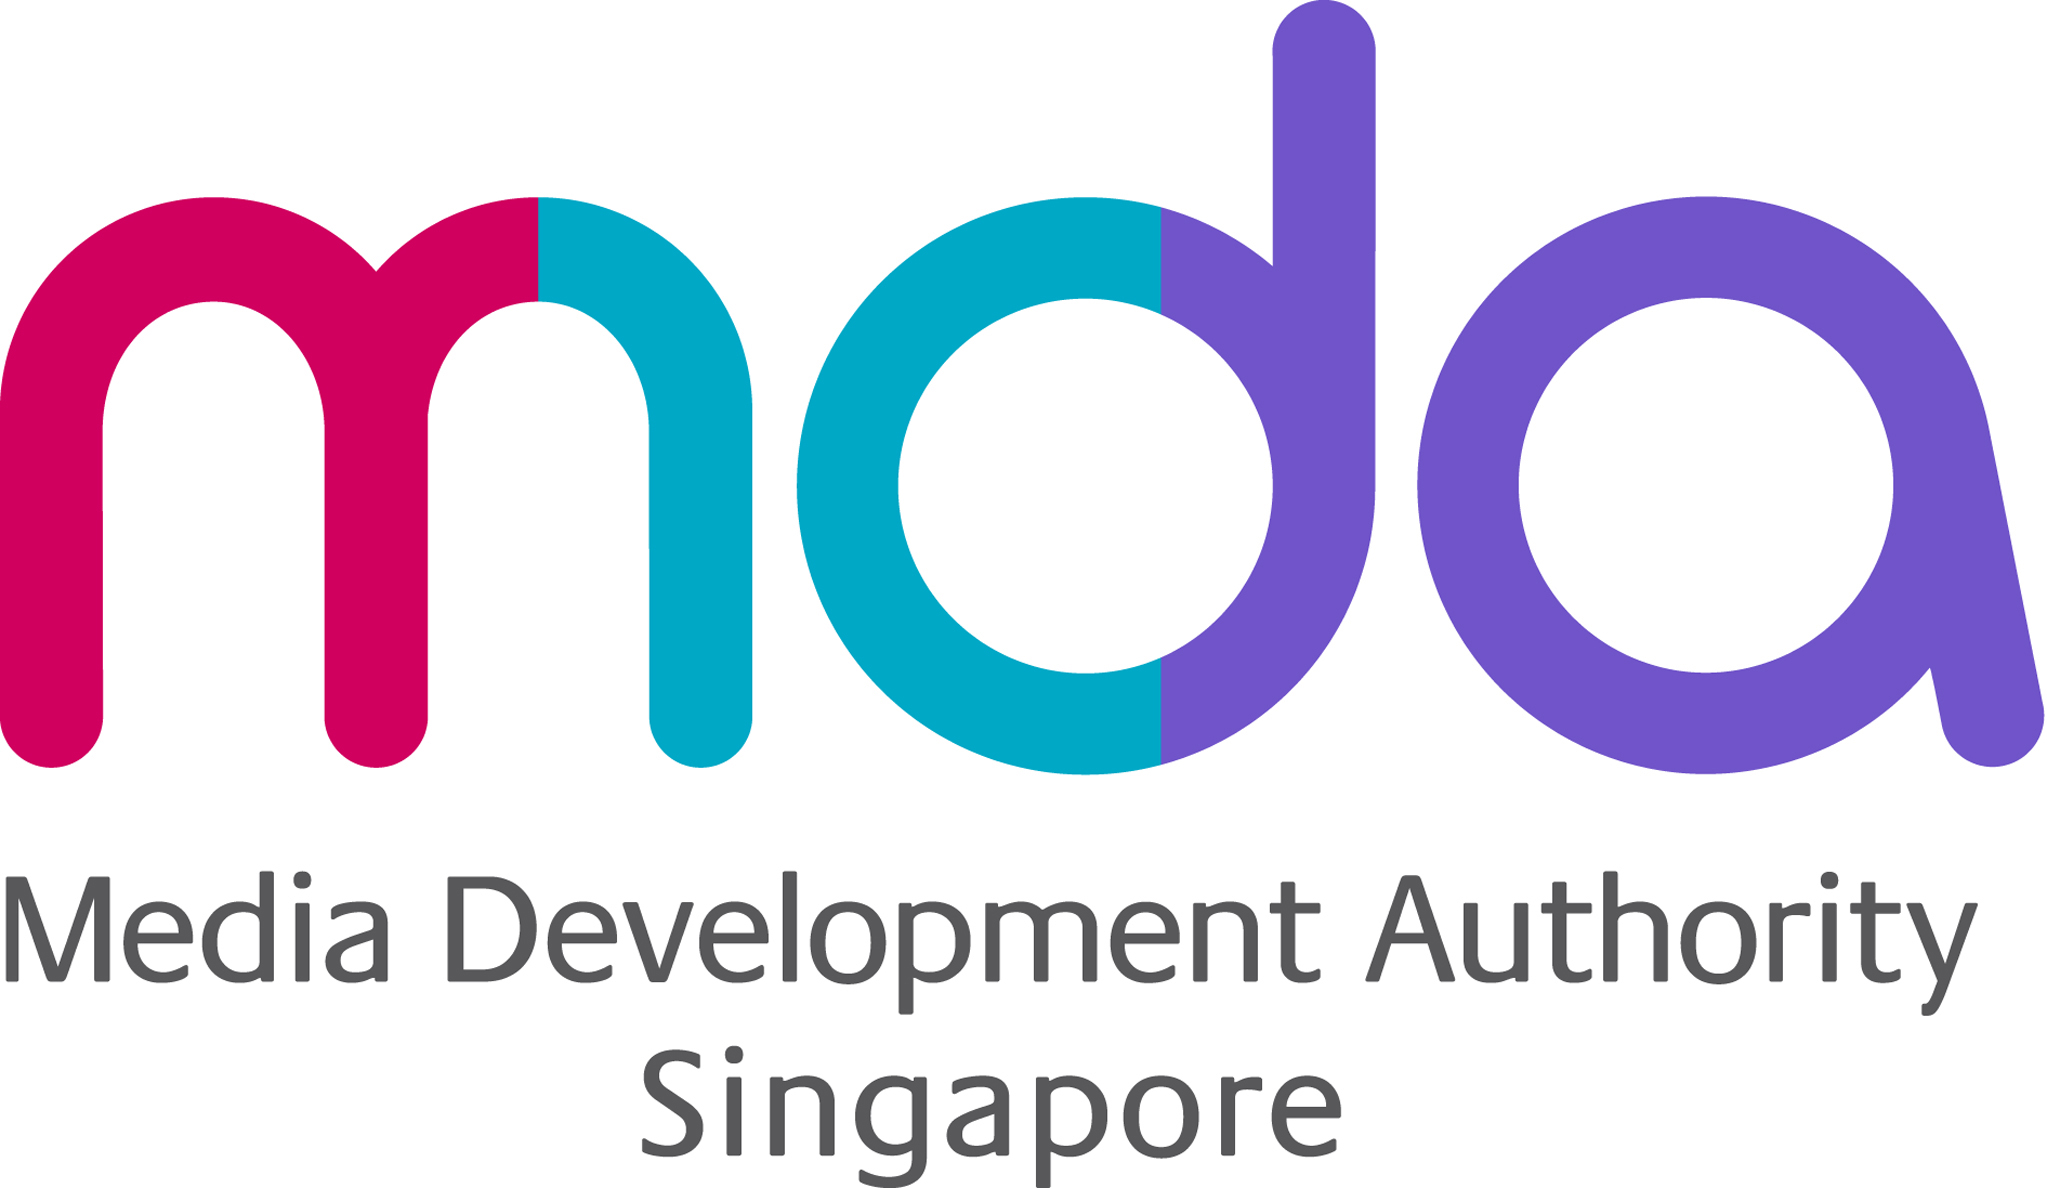 Onwijs MDA urged to relax TV censorship rules, Singapore News - AsiaOne RW-76